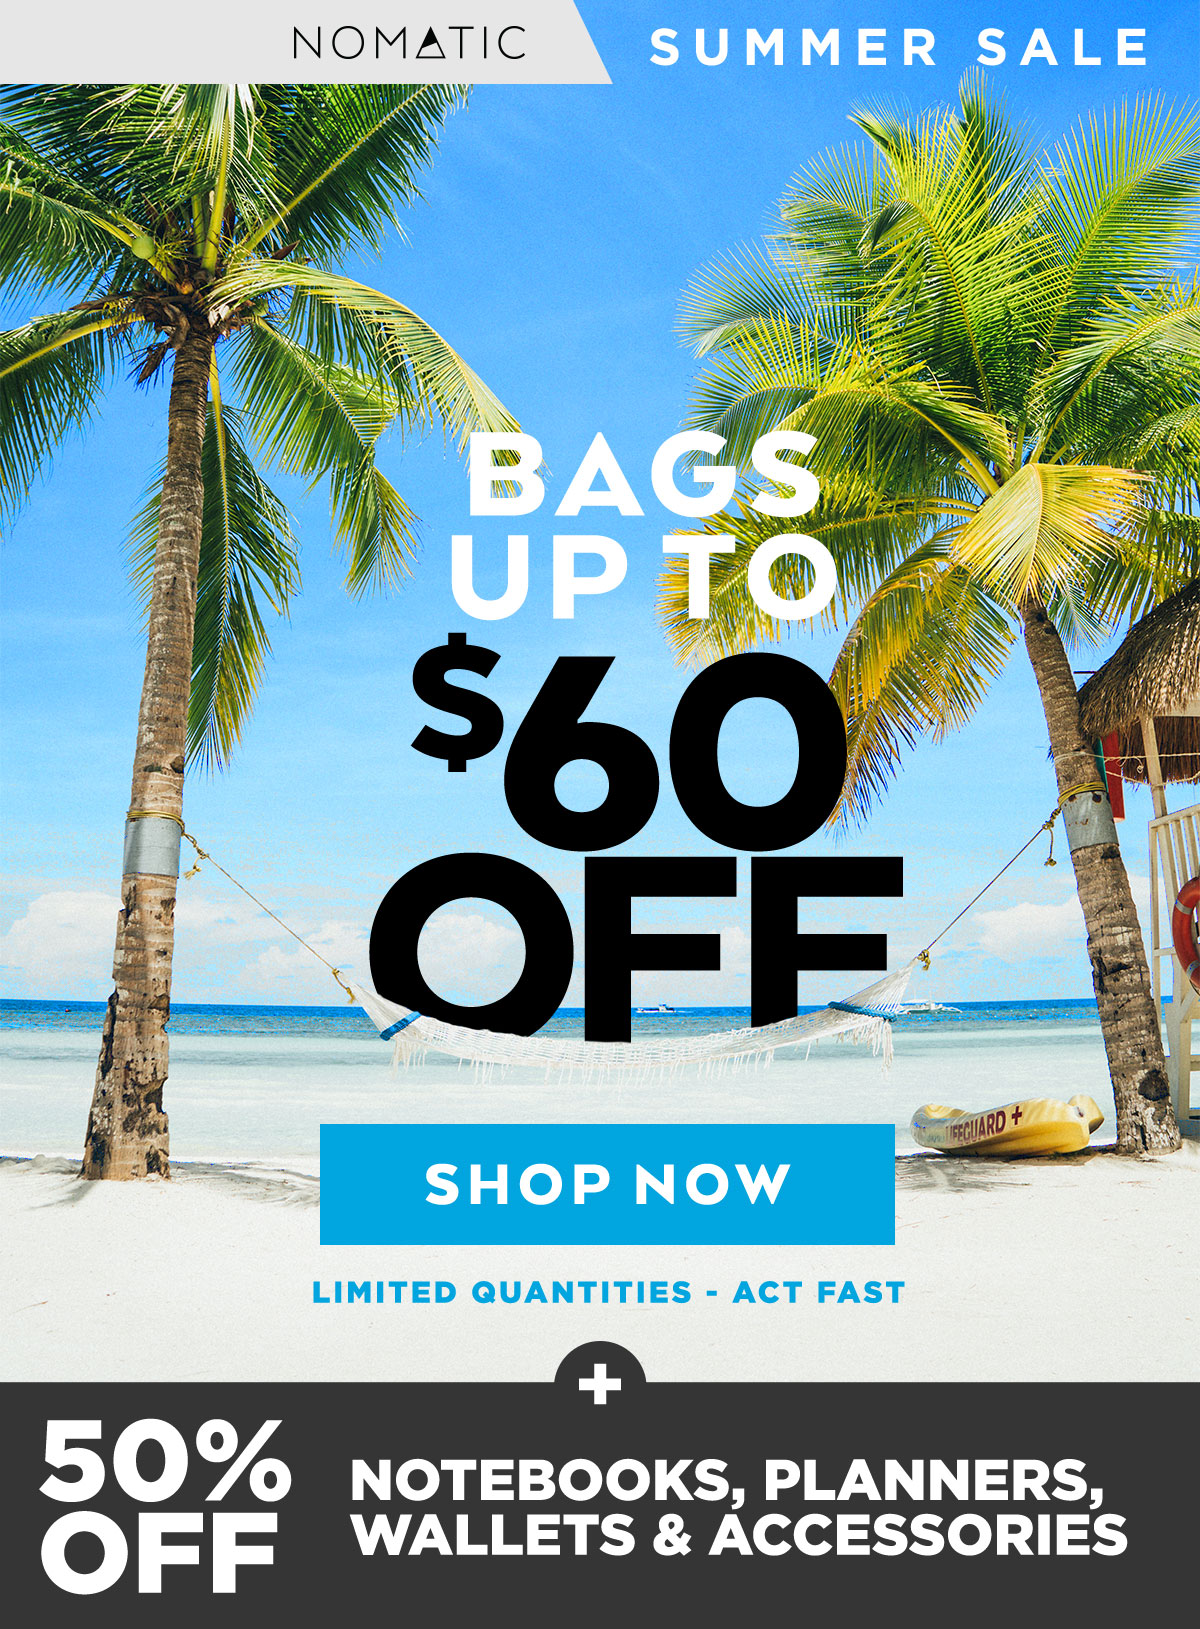 NOMATIC Summer Sale - Bags Up To $60 Off